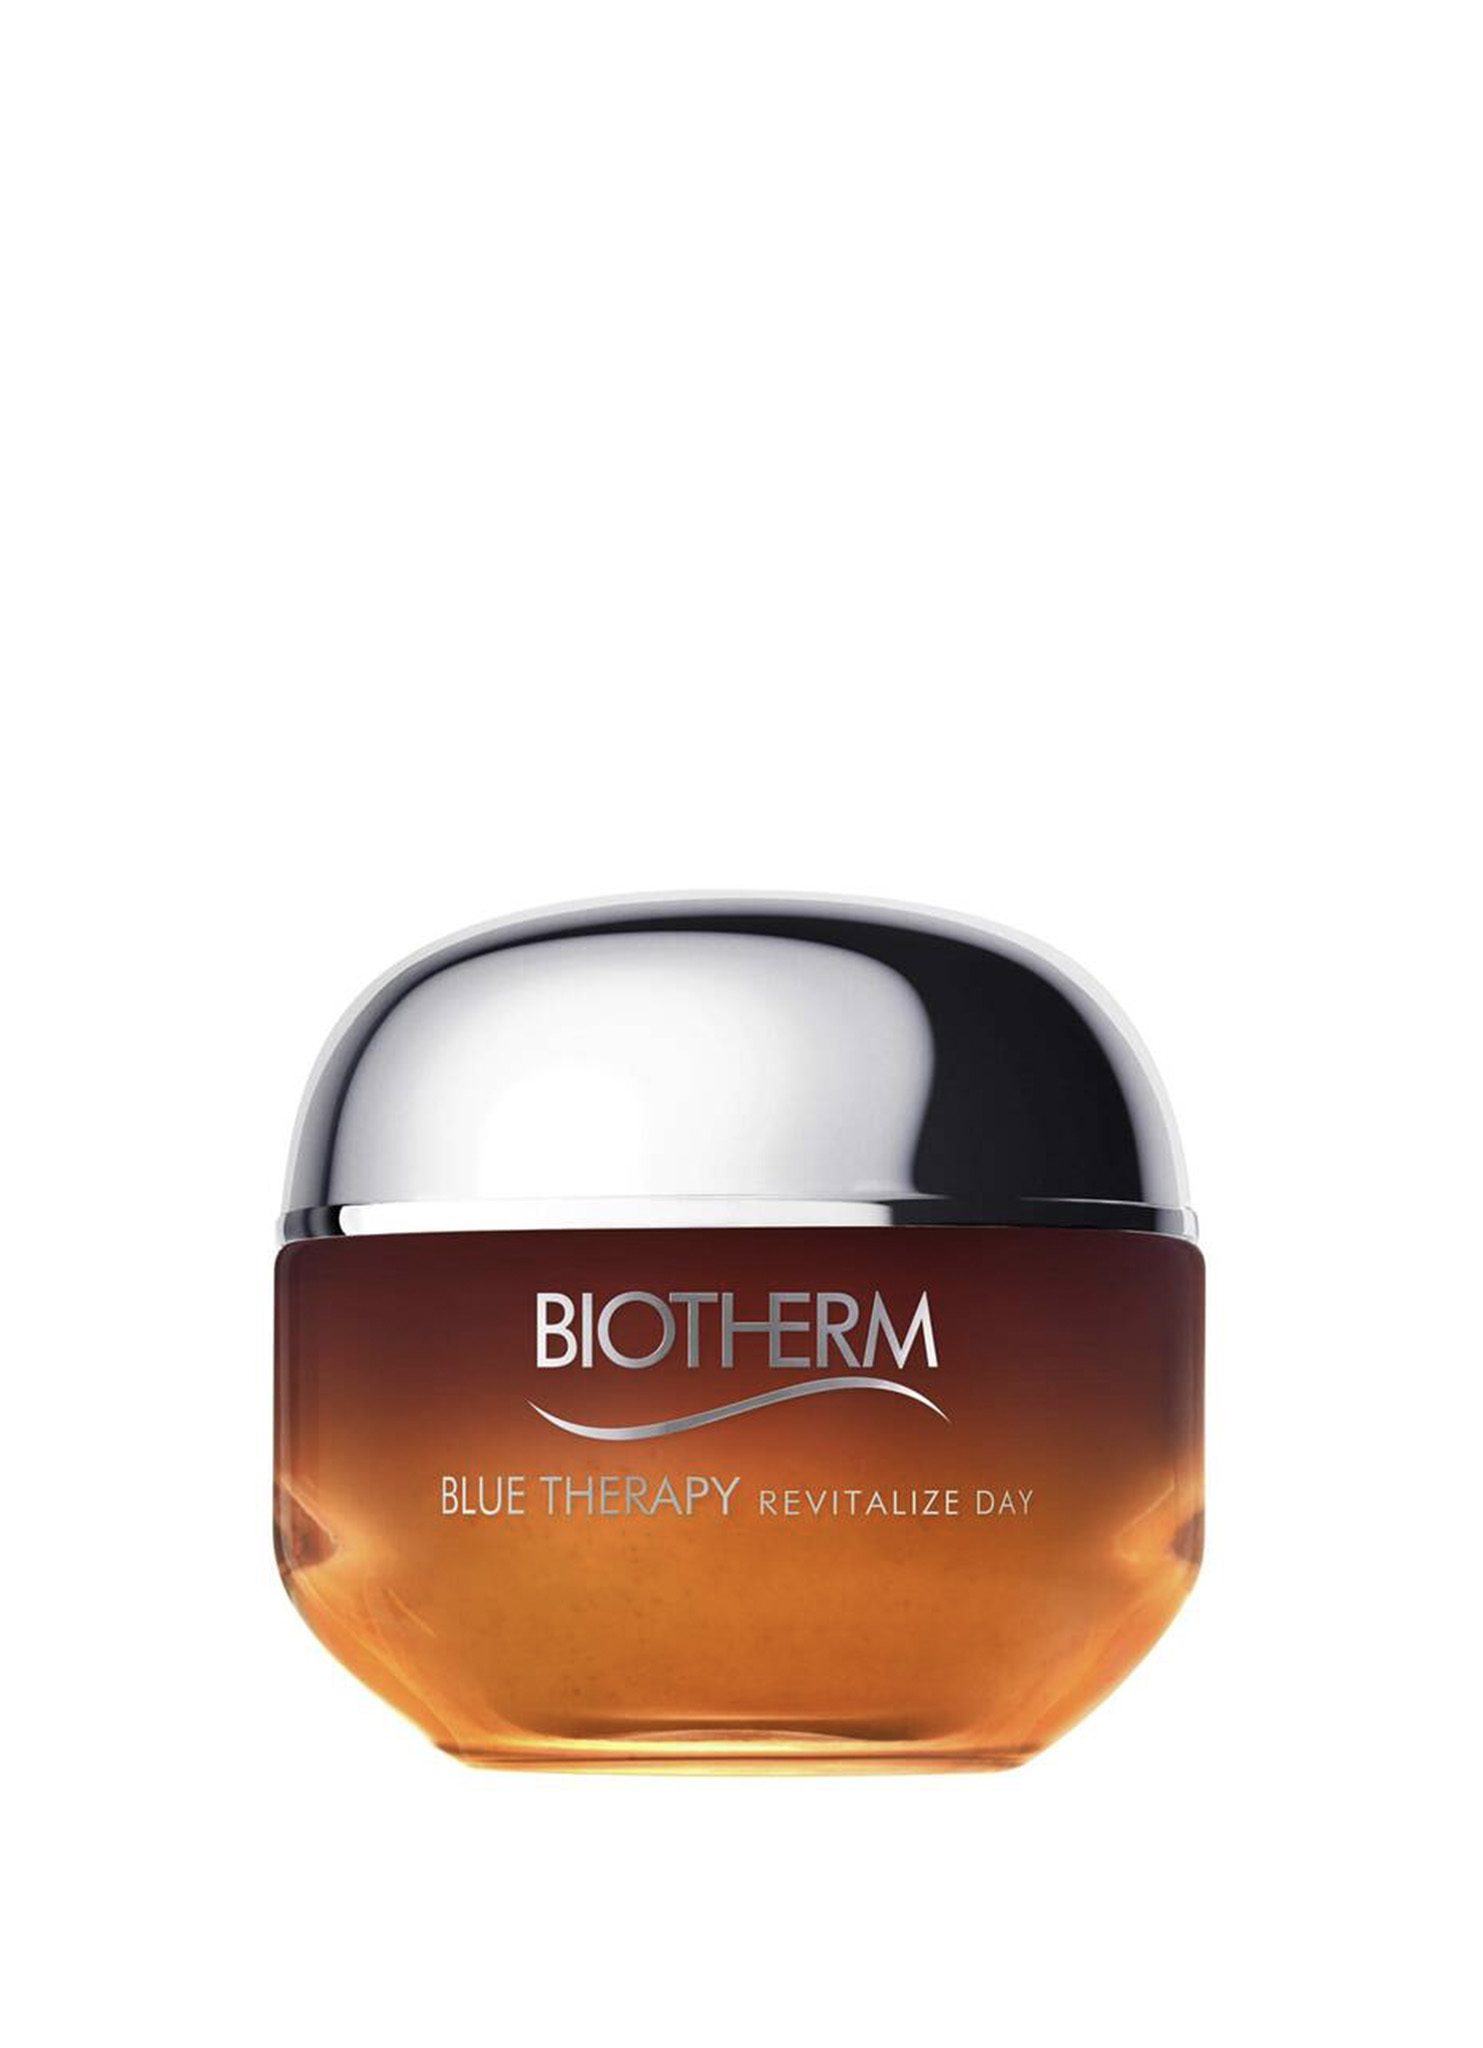 Blue therapy Biotherm Product